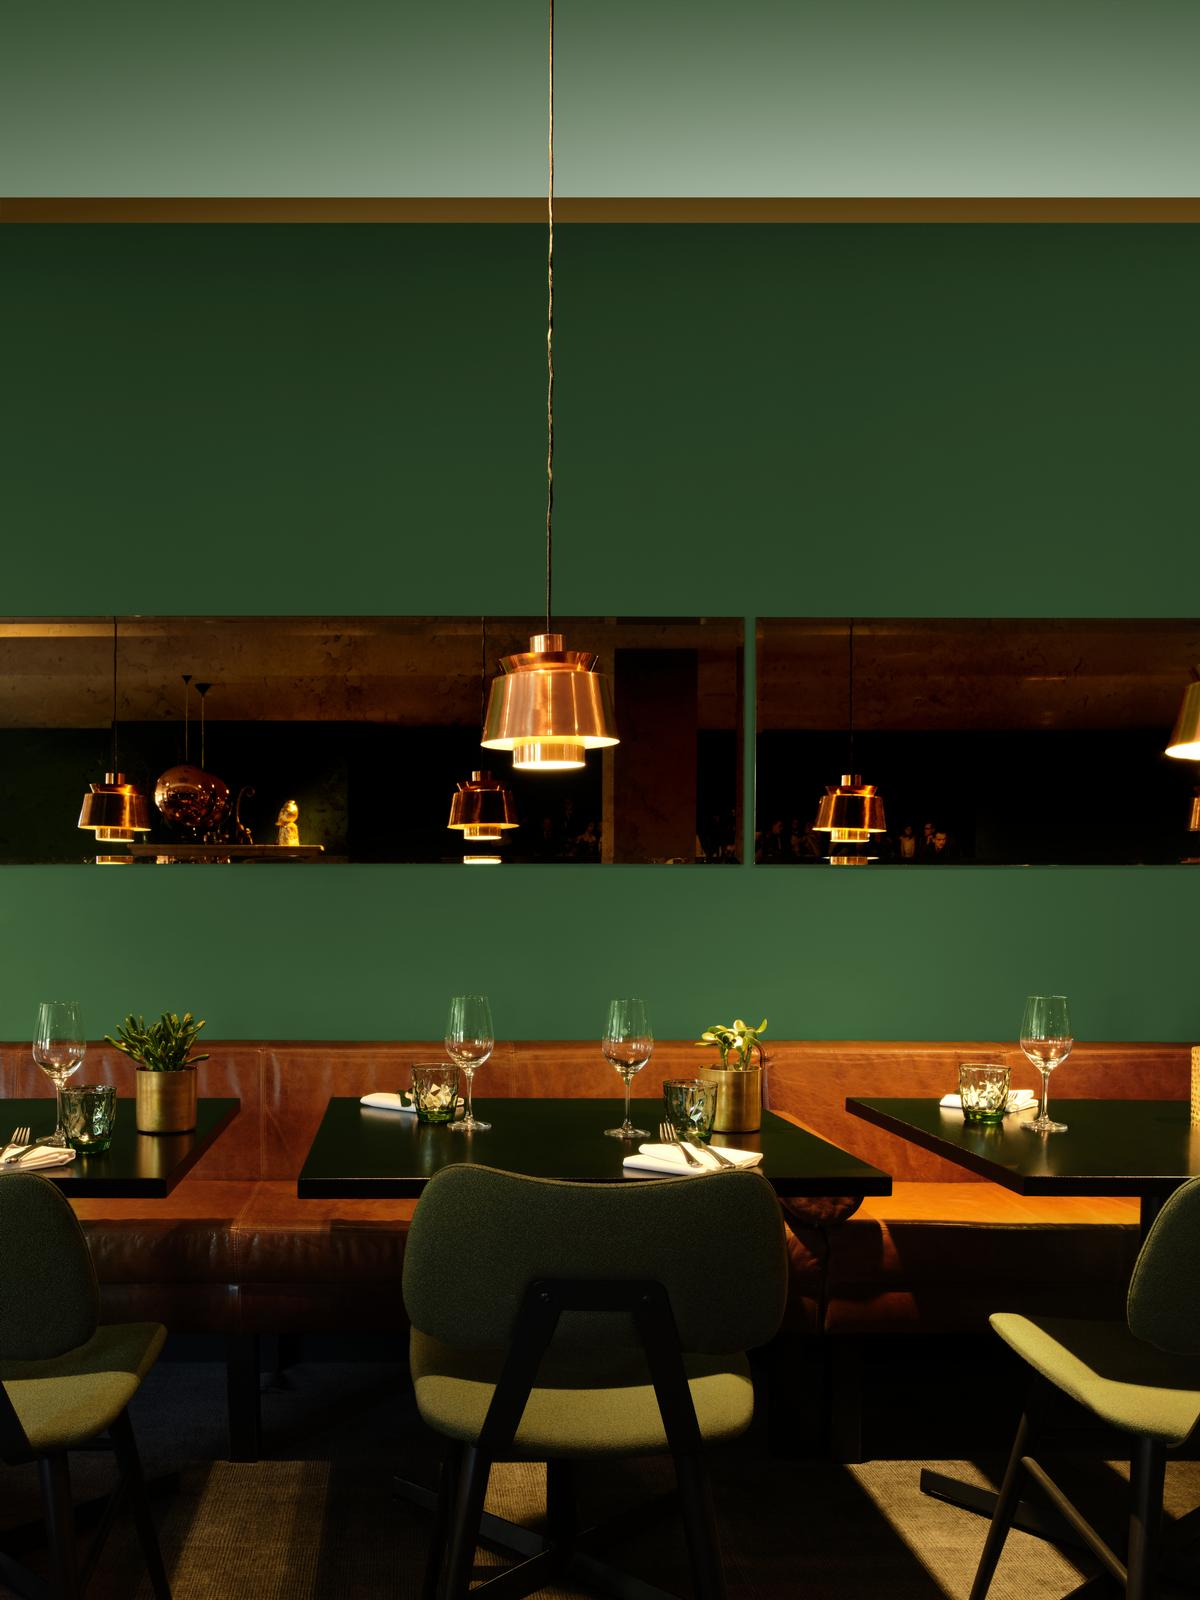 Colour can be used to stimulate appetite in the restaurant, says Shillingford